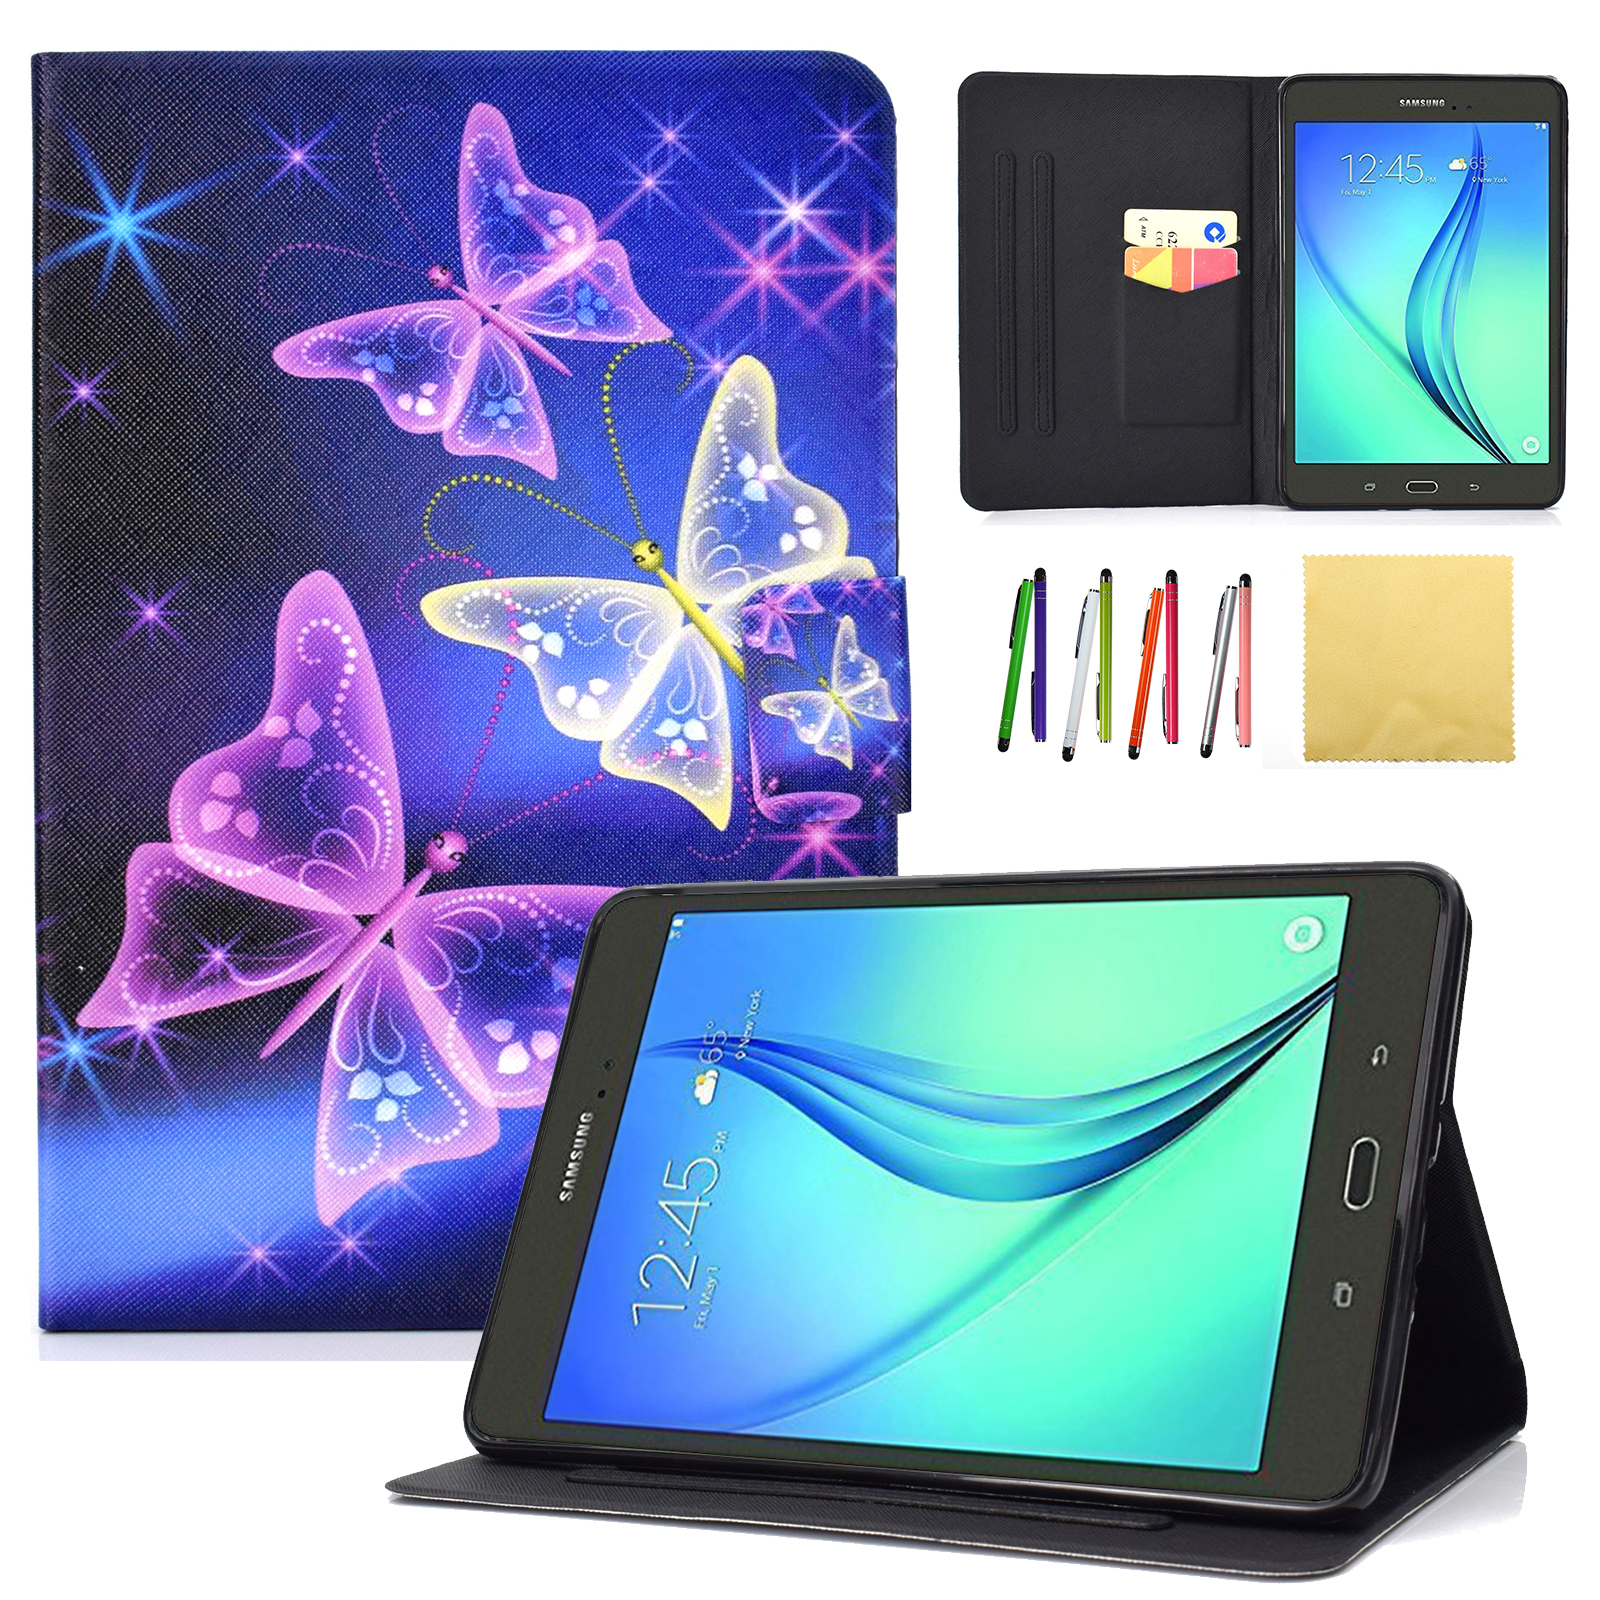 "Galaxy Tab A 8.0 (8.0 inch, SM-T350 P350) Case, Goodest Slim Folio Flip Stand Cover with Auto Wake Sleep [Card Slot Wallet Case] for Samsung Galaxy Tab A 8.0"" Tablet, Sparkle Butterfly"